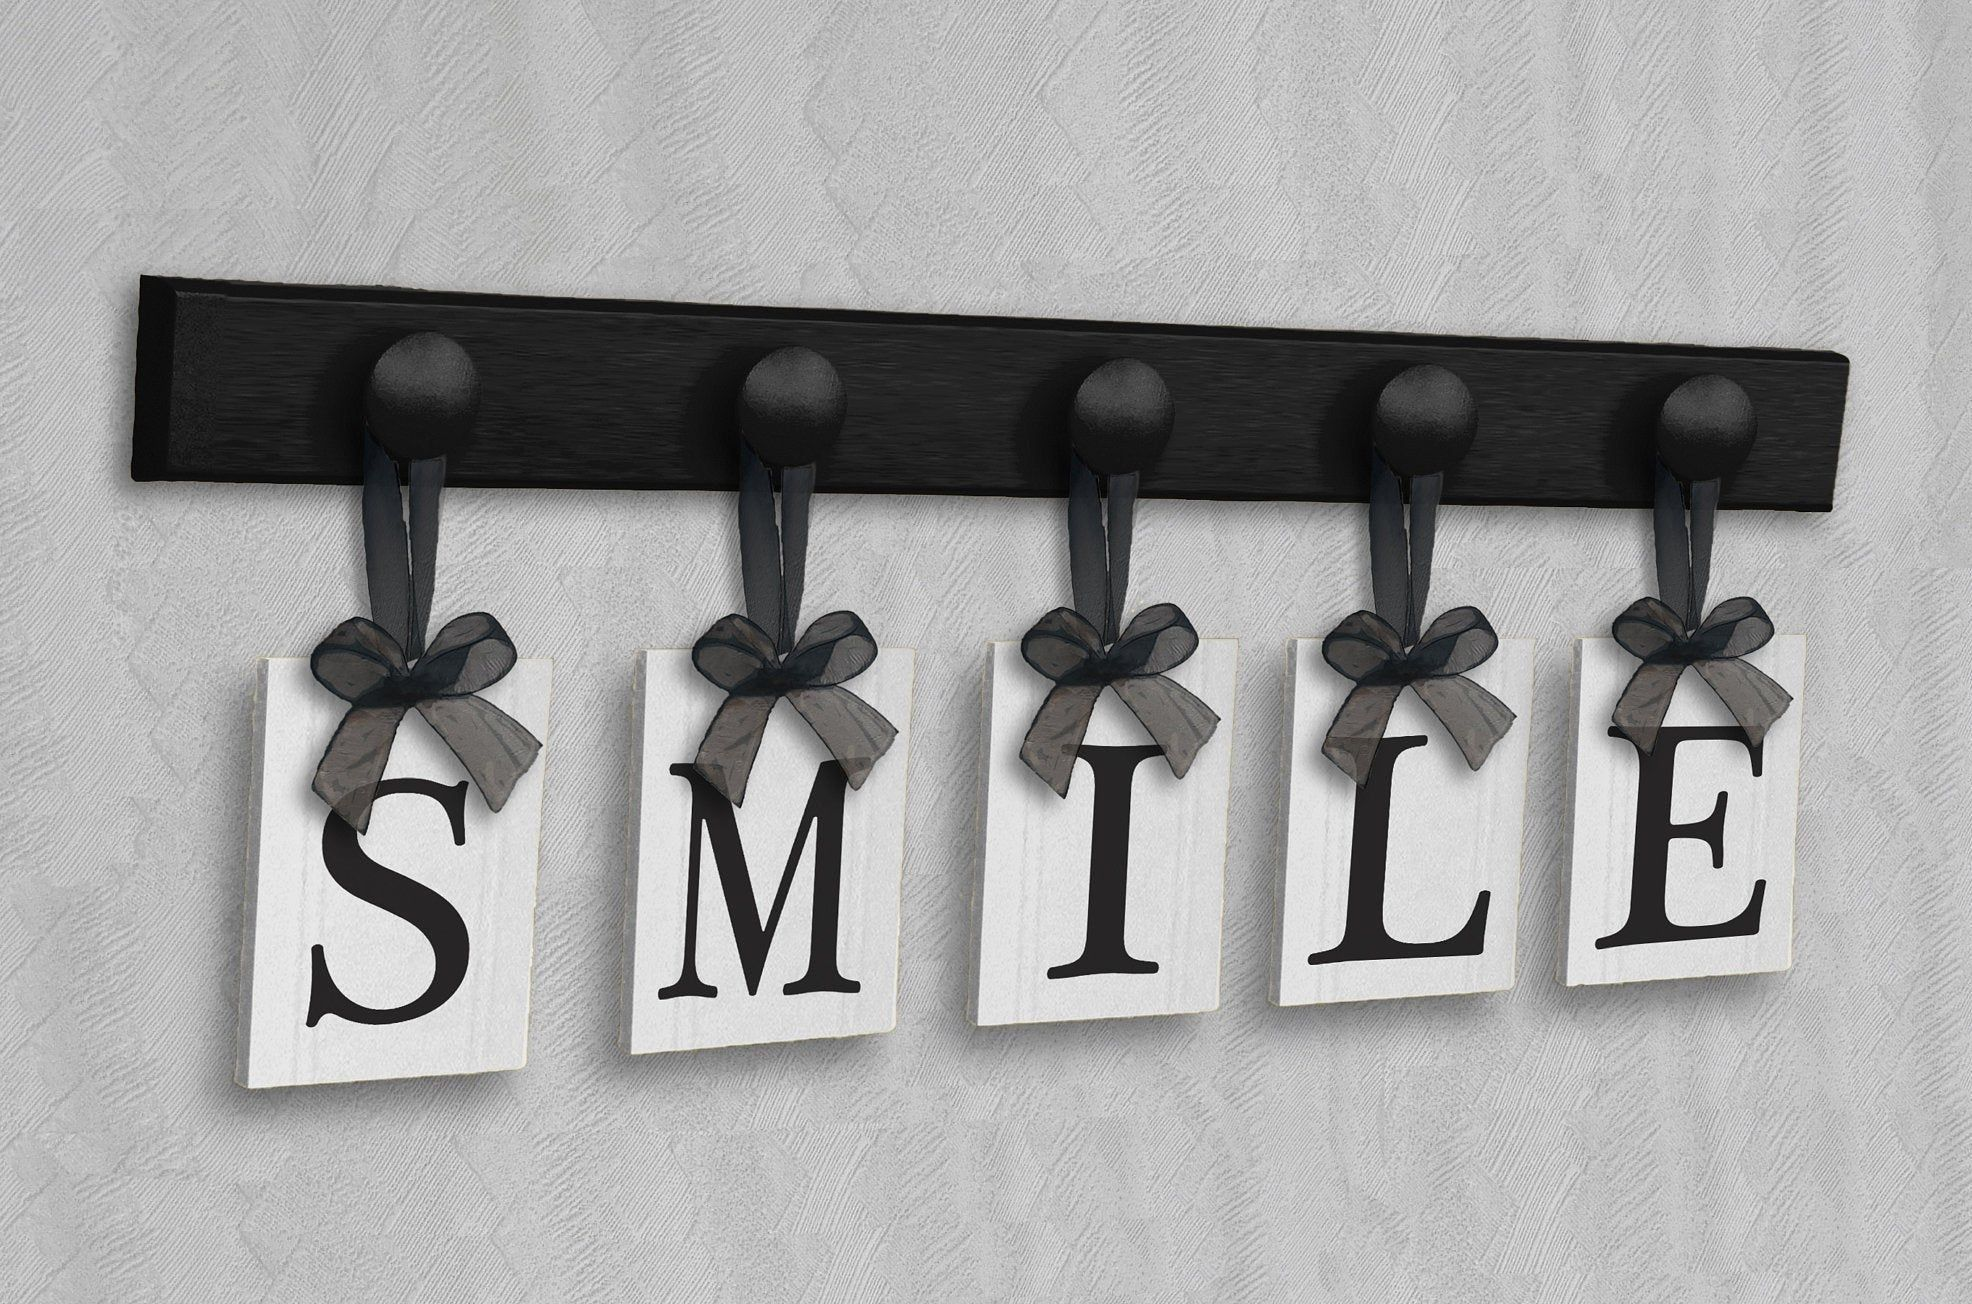 42+ Letter wall art signs ideas in 2021